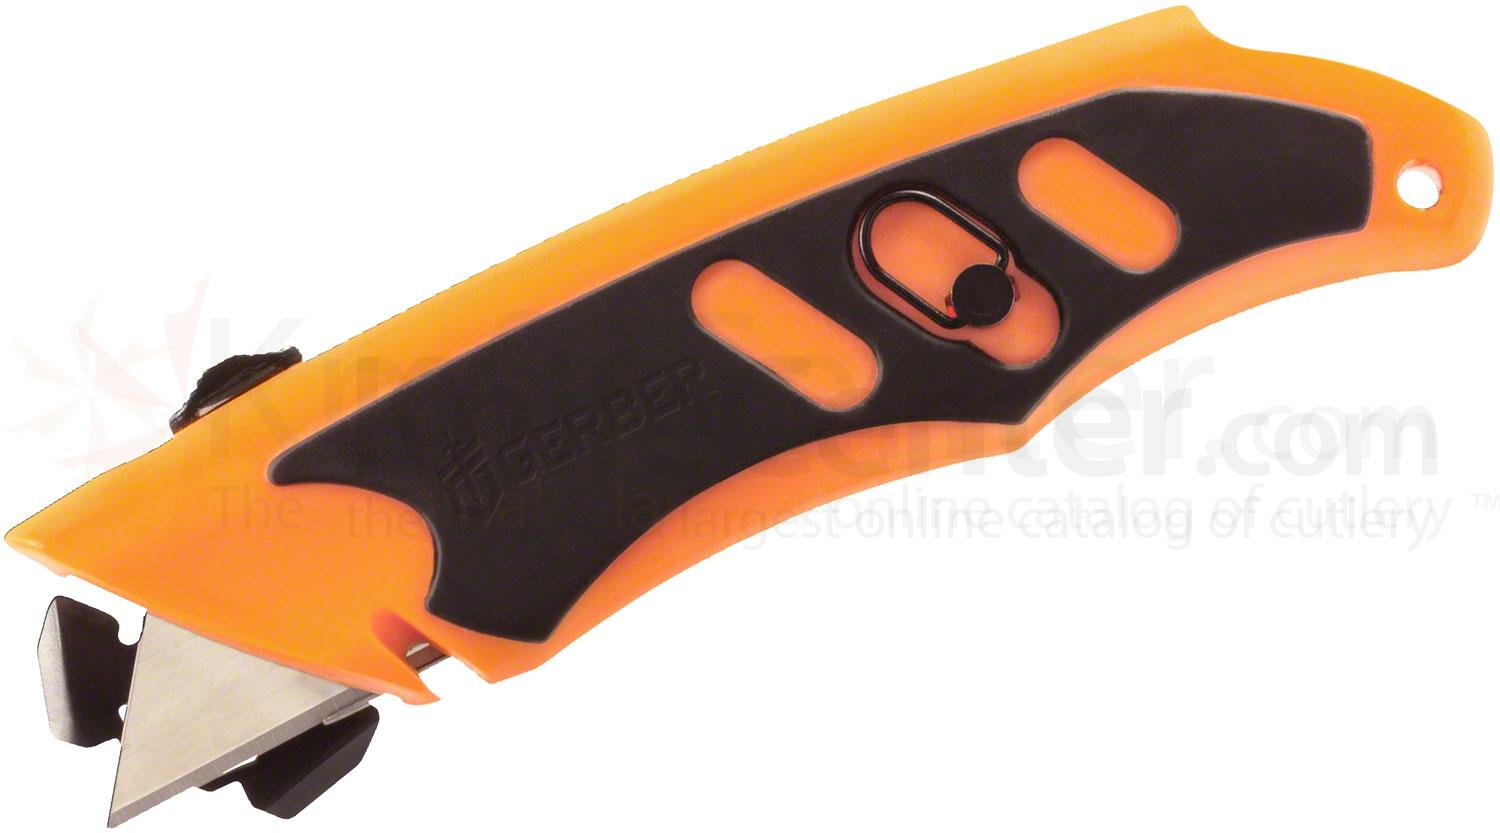 Gerber Transit 2-in-1 Folding Utility Knife